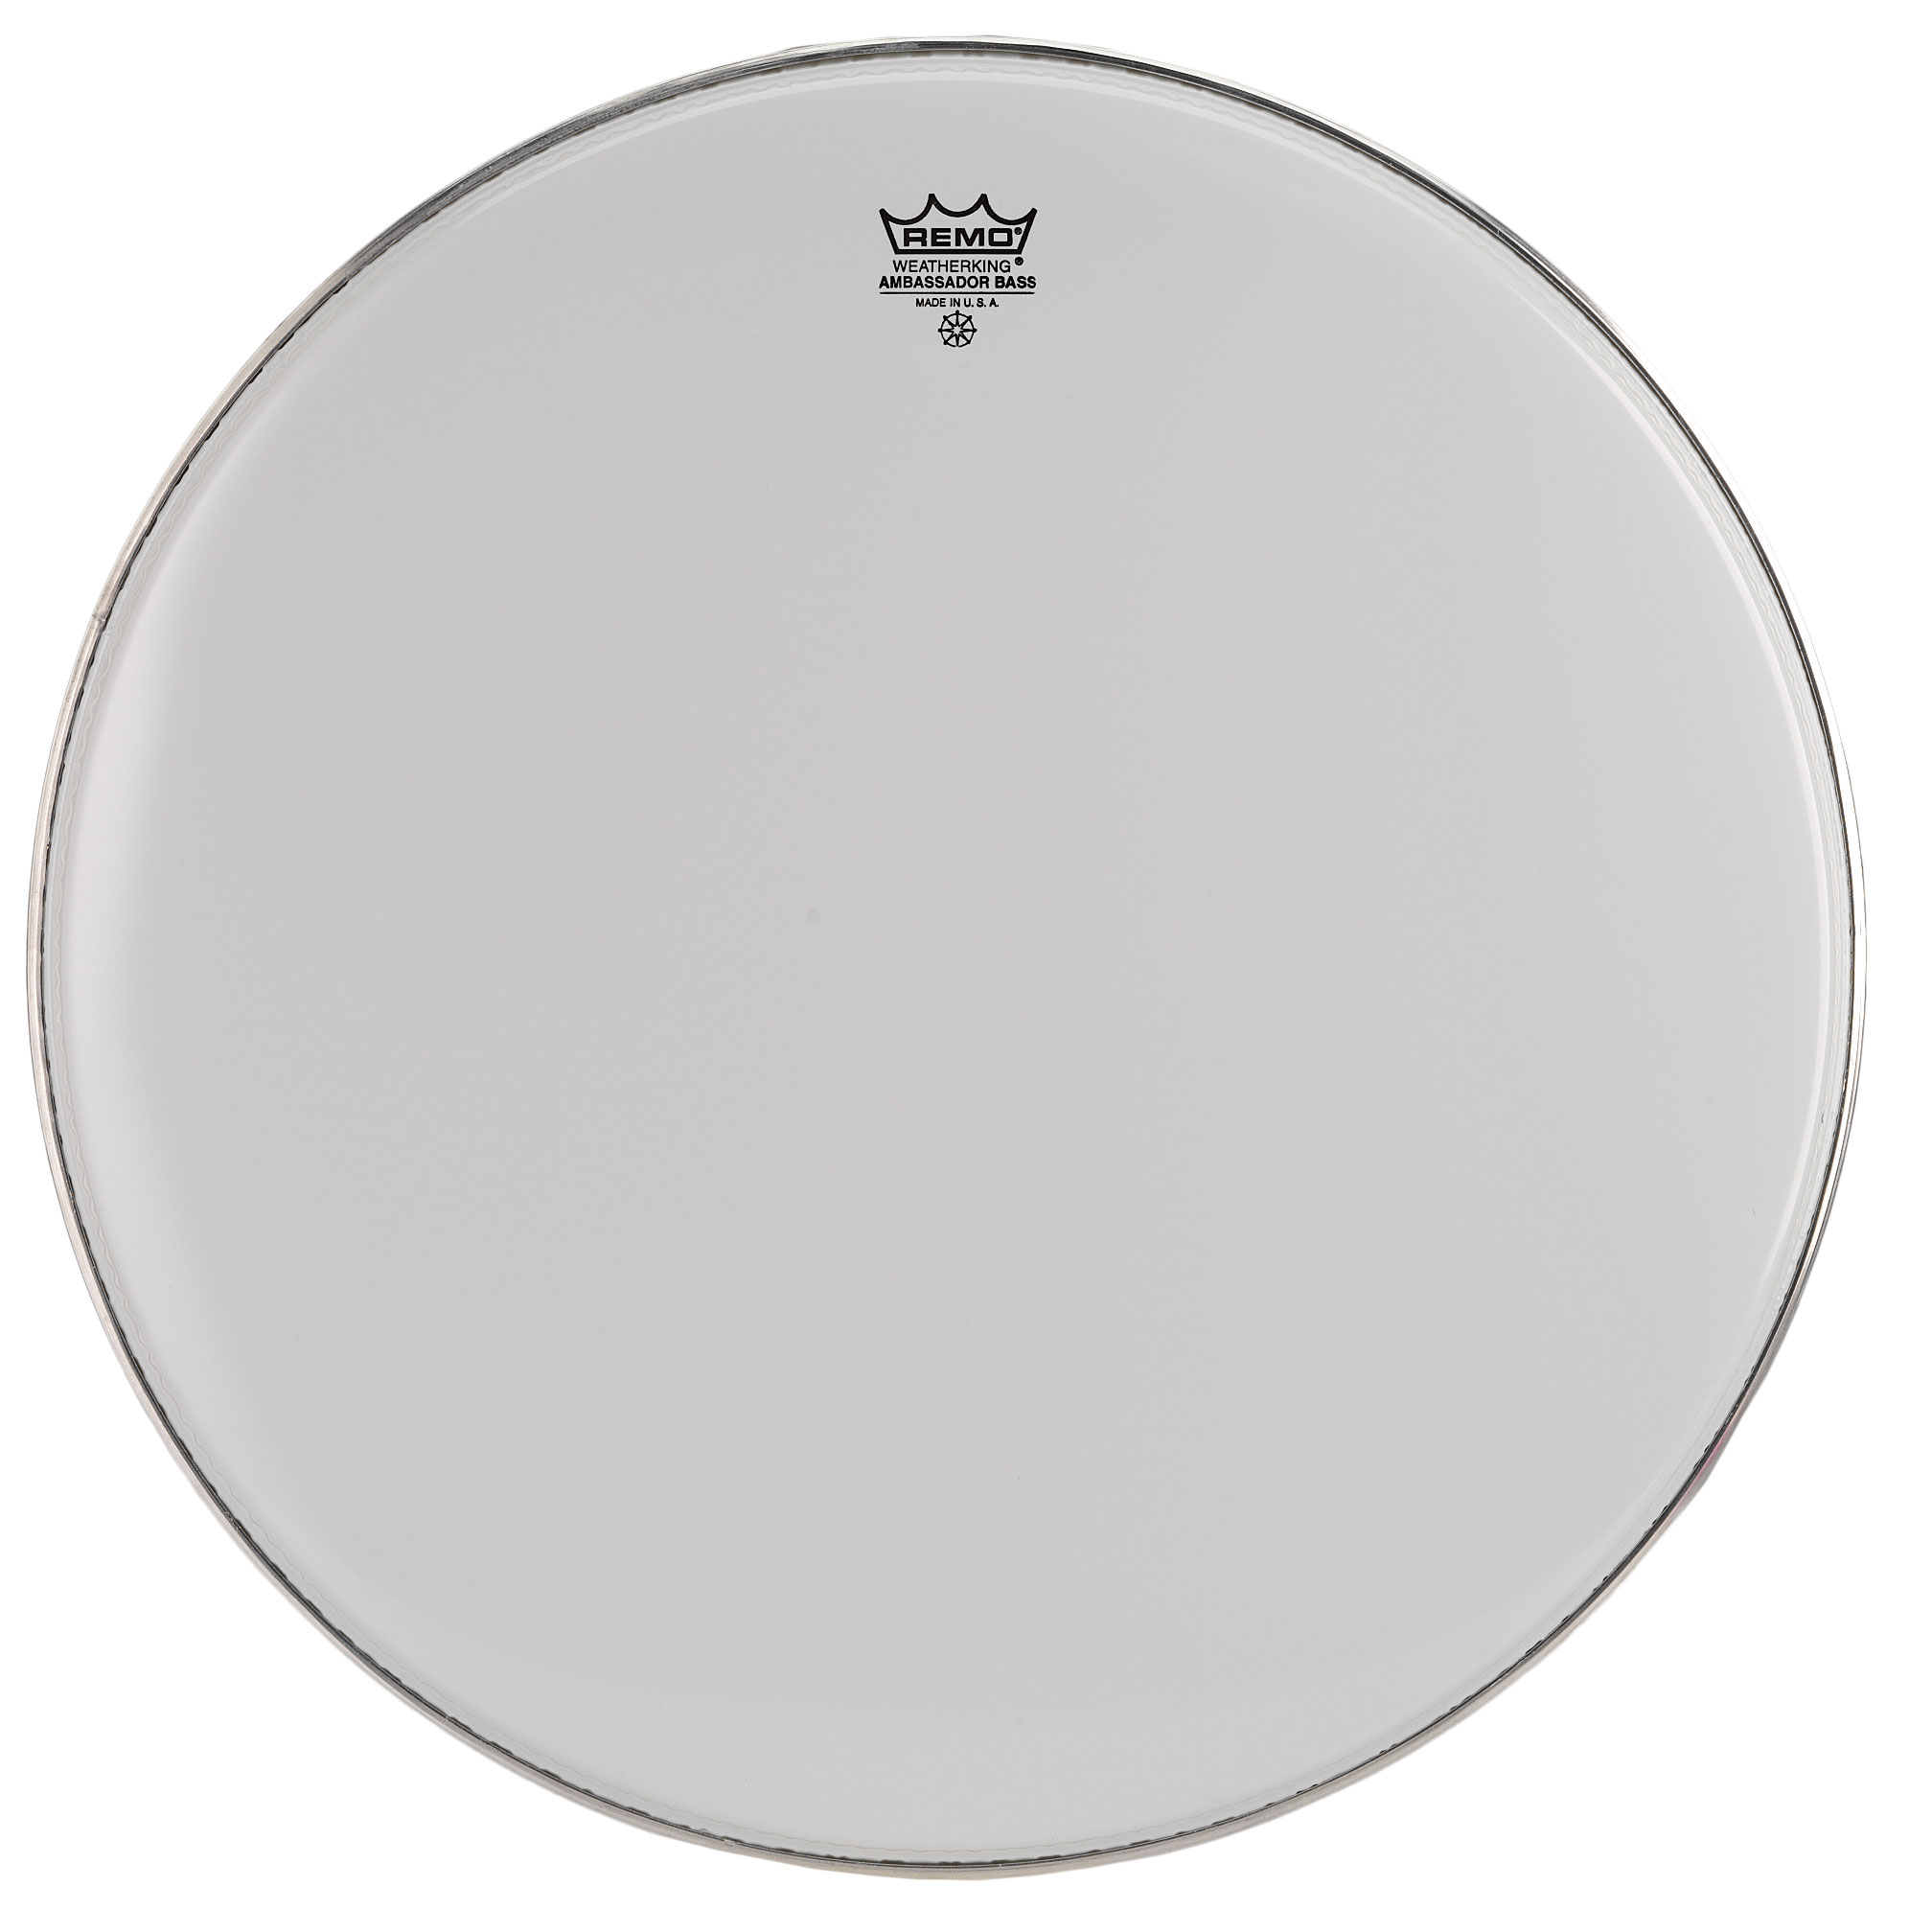 "Remo 32"" Ambassador Coated Concert Bass Drum Head"